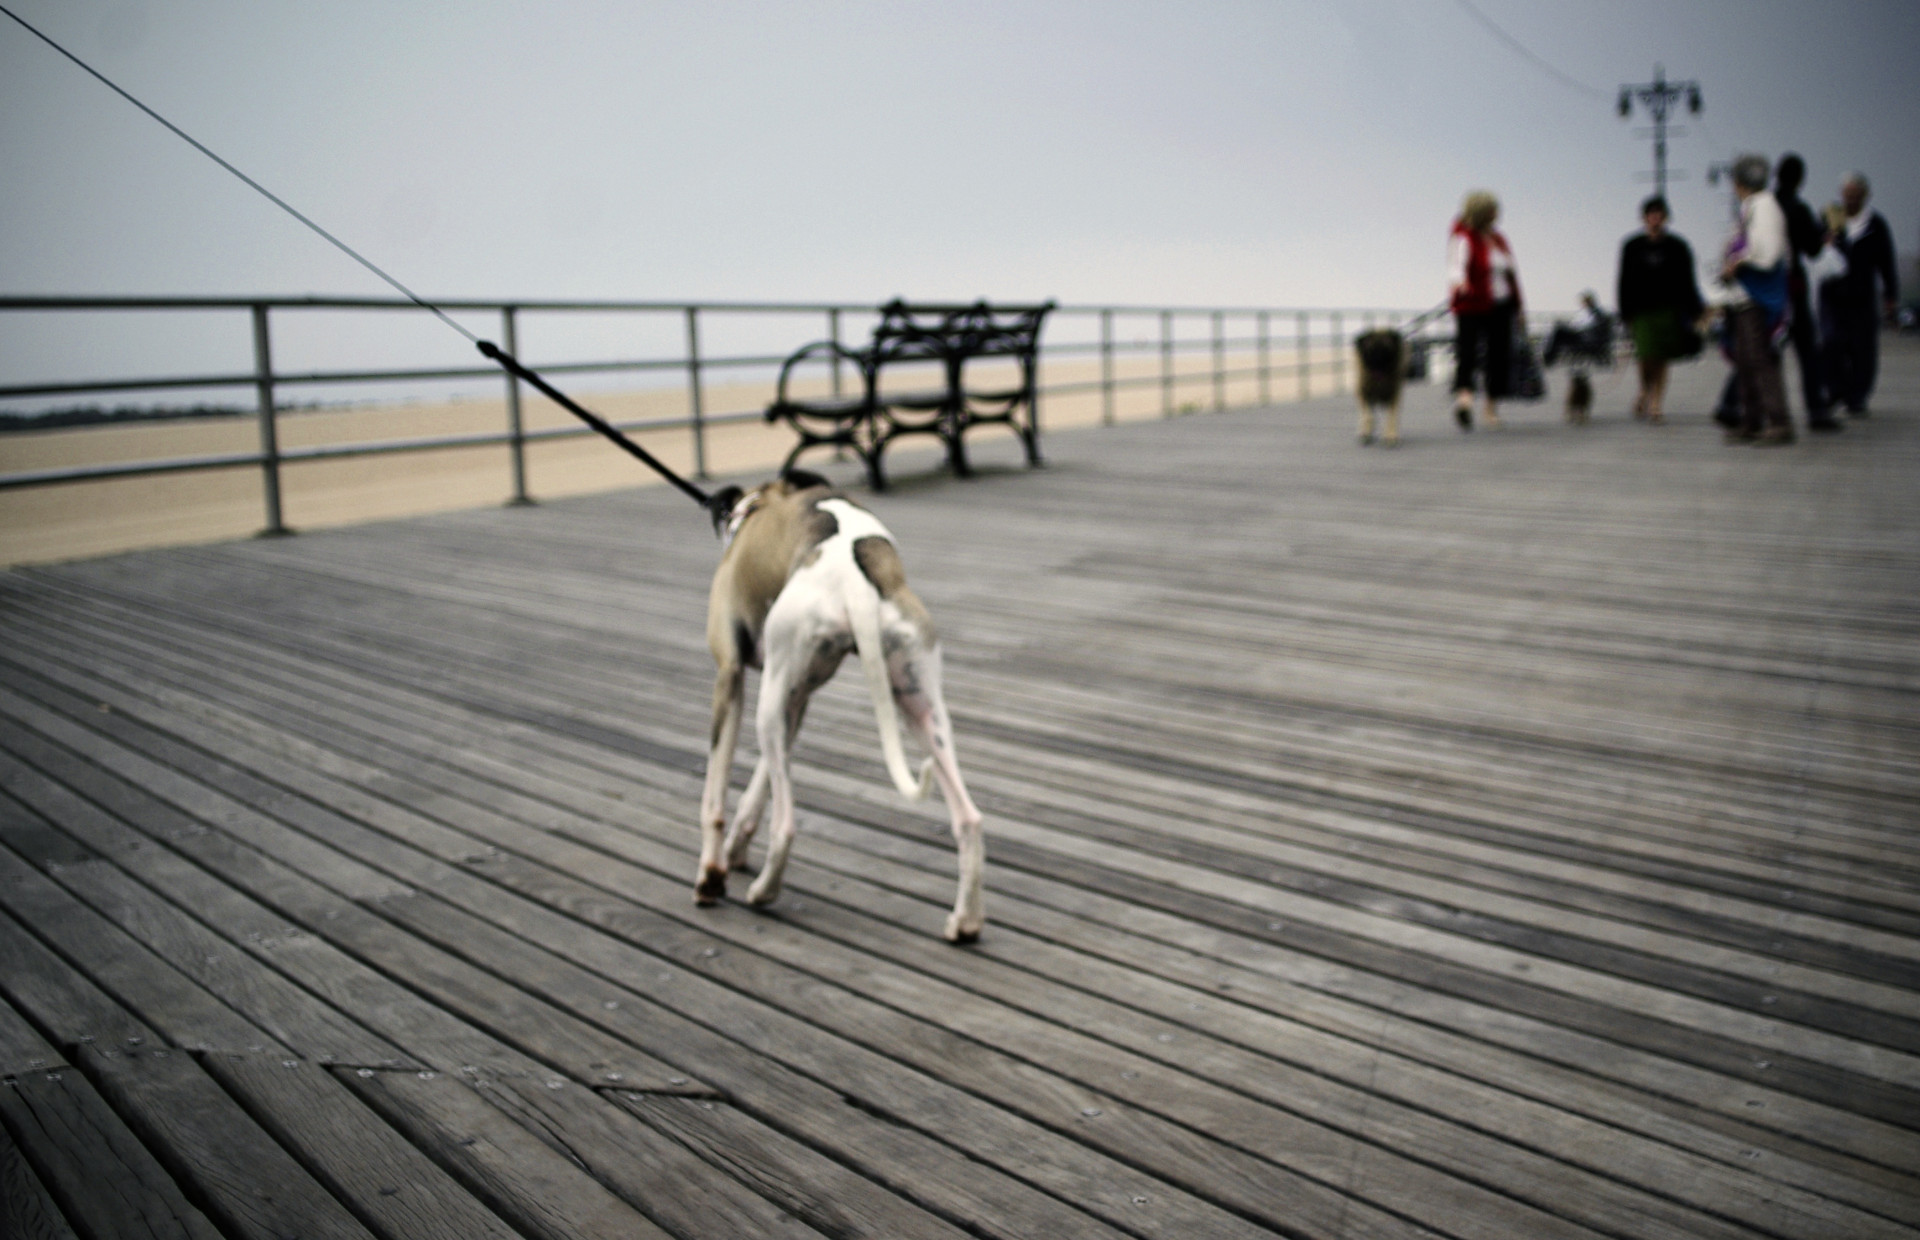 Dog-on-leach-Brighton-Beach-Coney-Island-New-York_IGP8272b